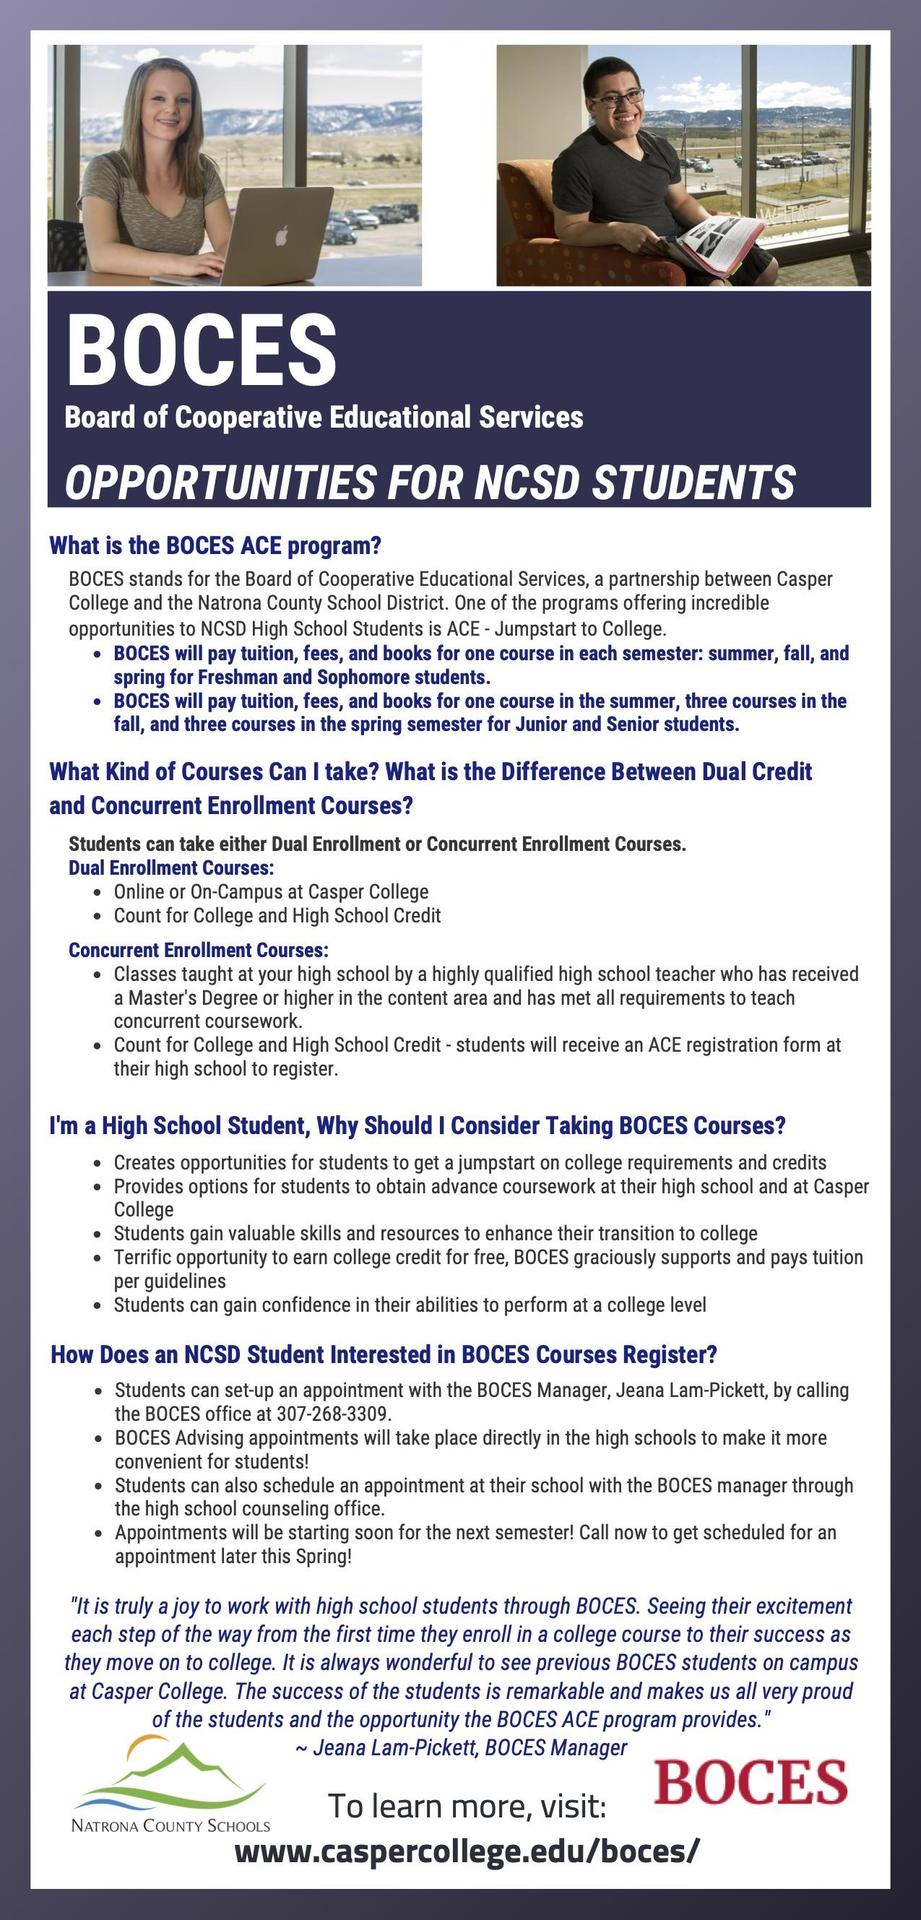 BOCES flyer